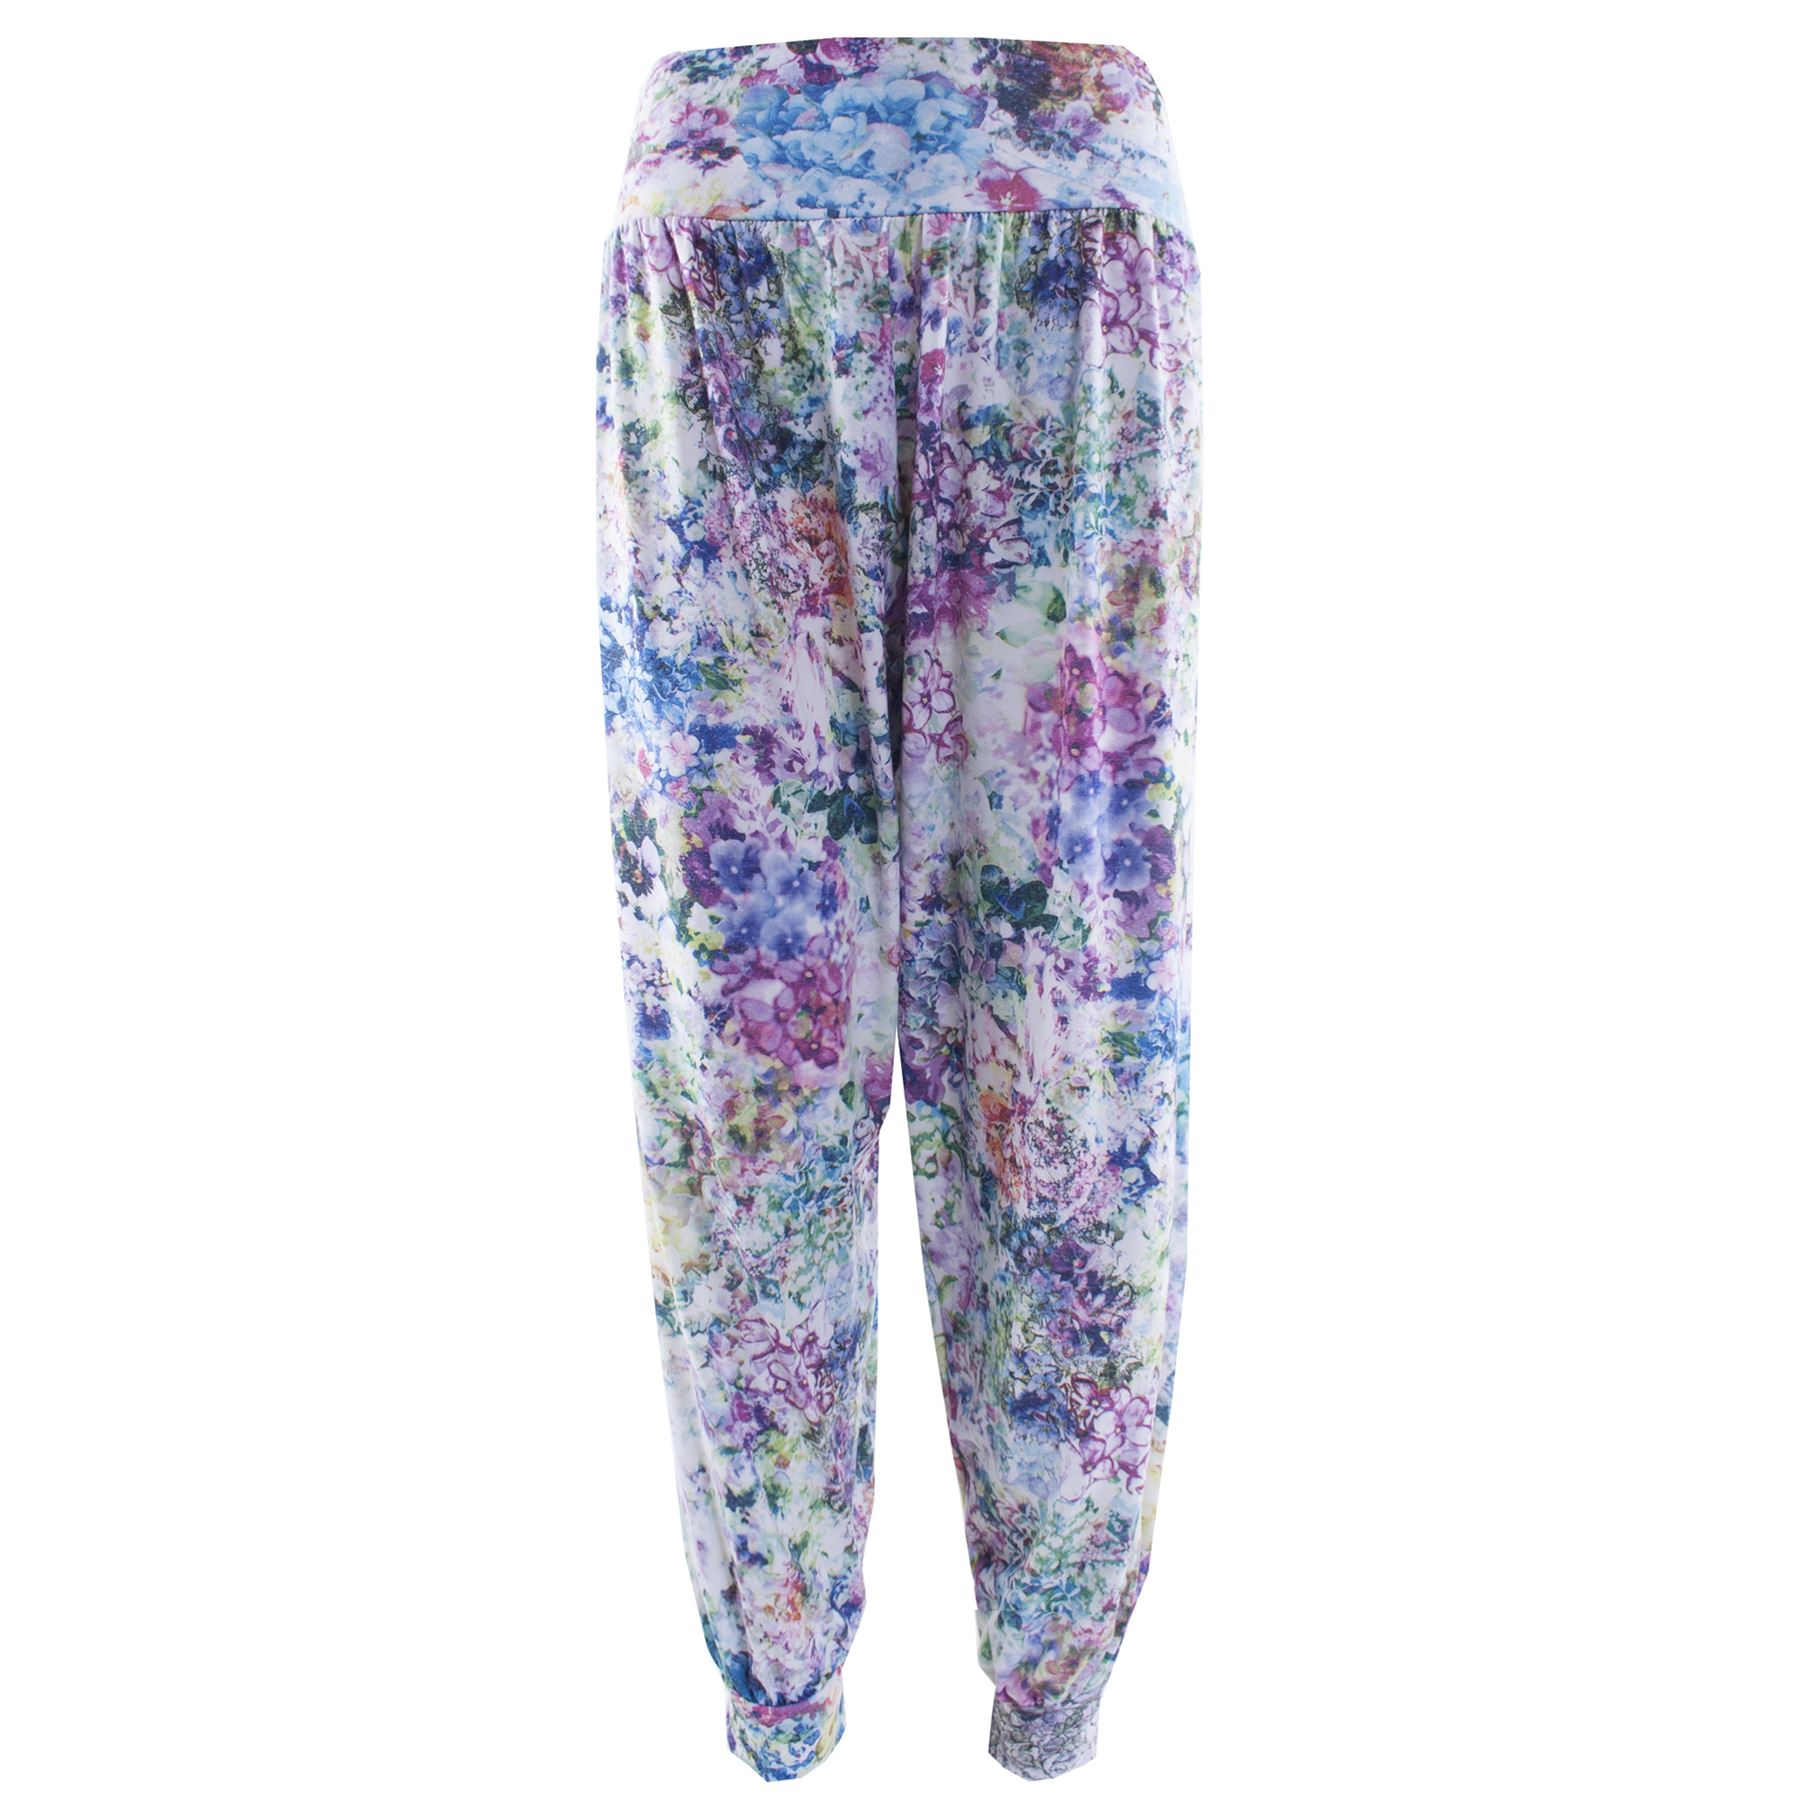 Brilliant New Womens Ali Baba Trousers Ladies Harem Pants Floral Printed Bottoms Leggin